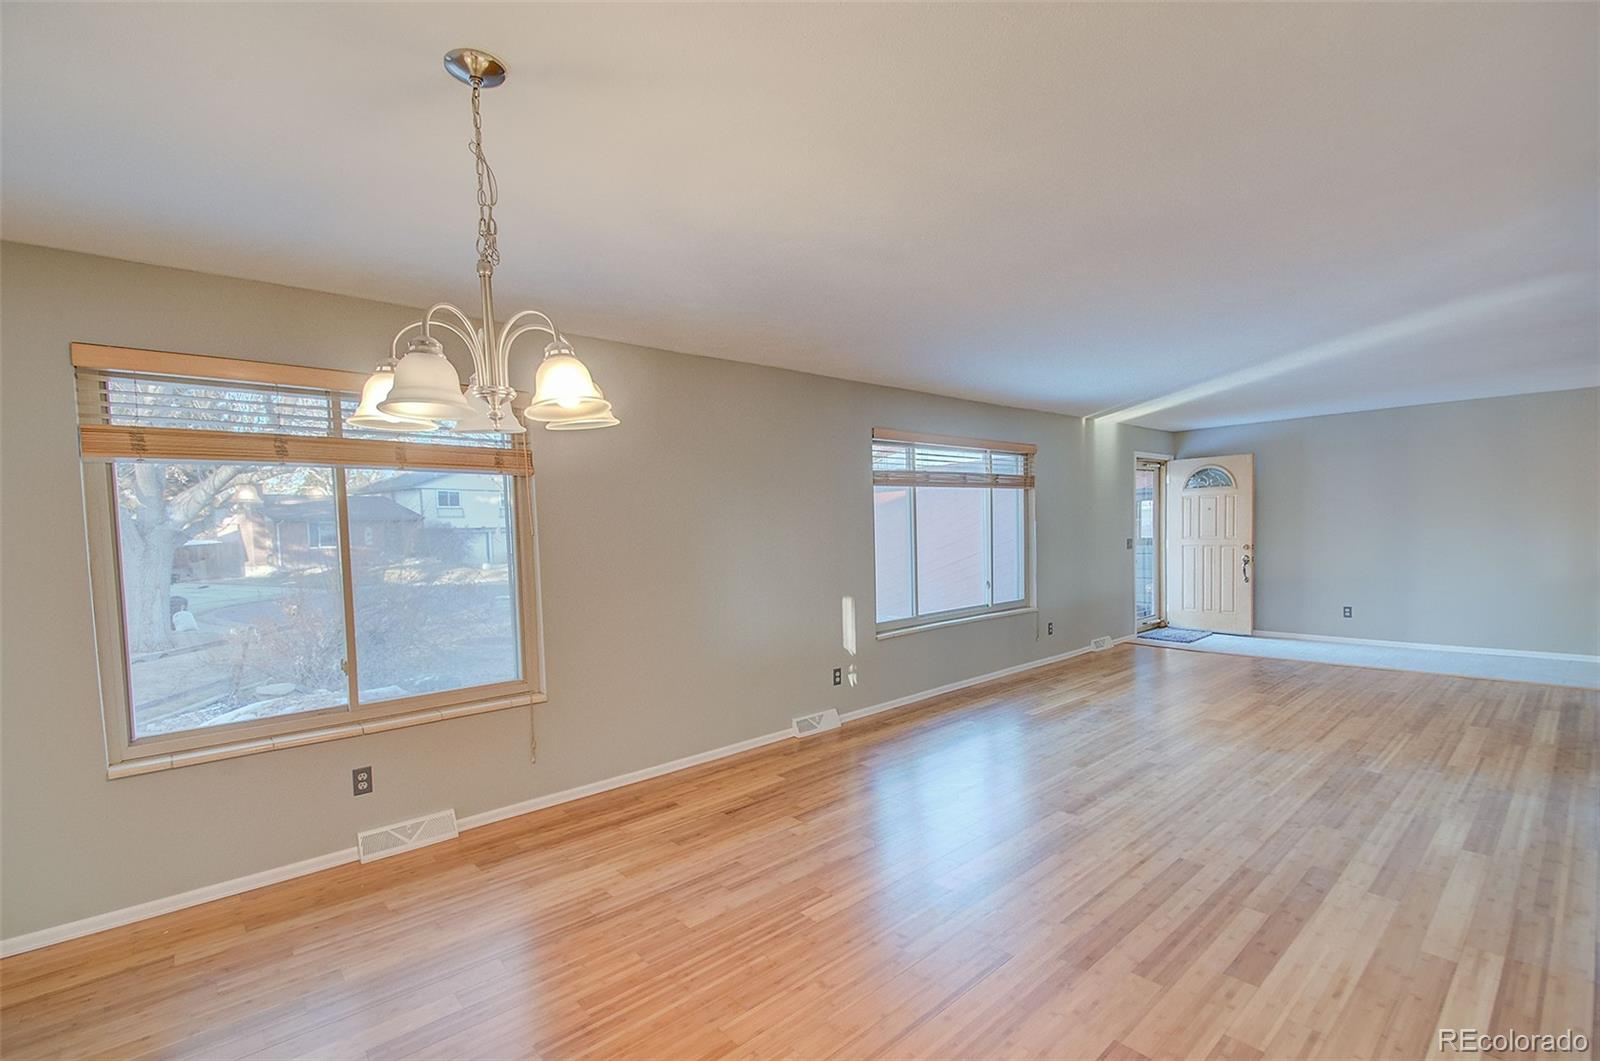 MLS# 2260867 - 7 - 6075 W 82nd Place, Arvada, CO 80003